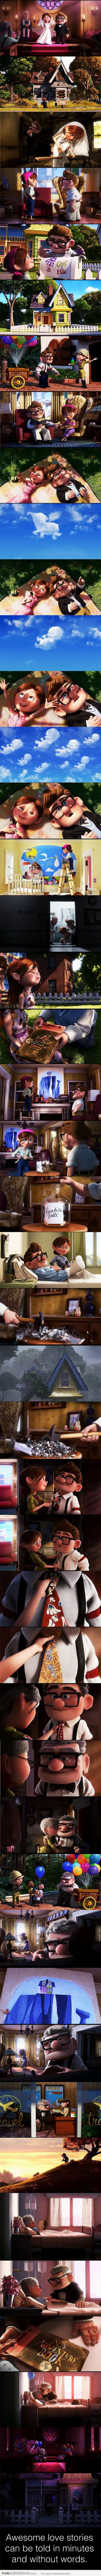 Damnit Disney. Making me cry...